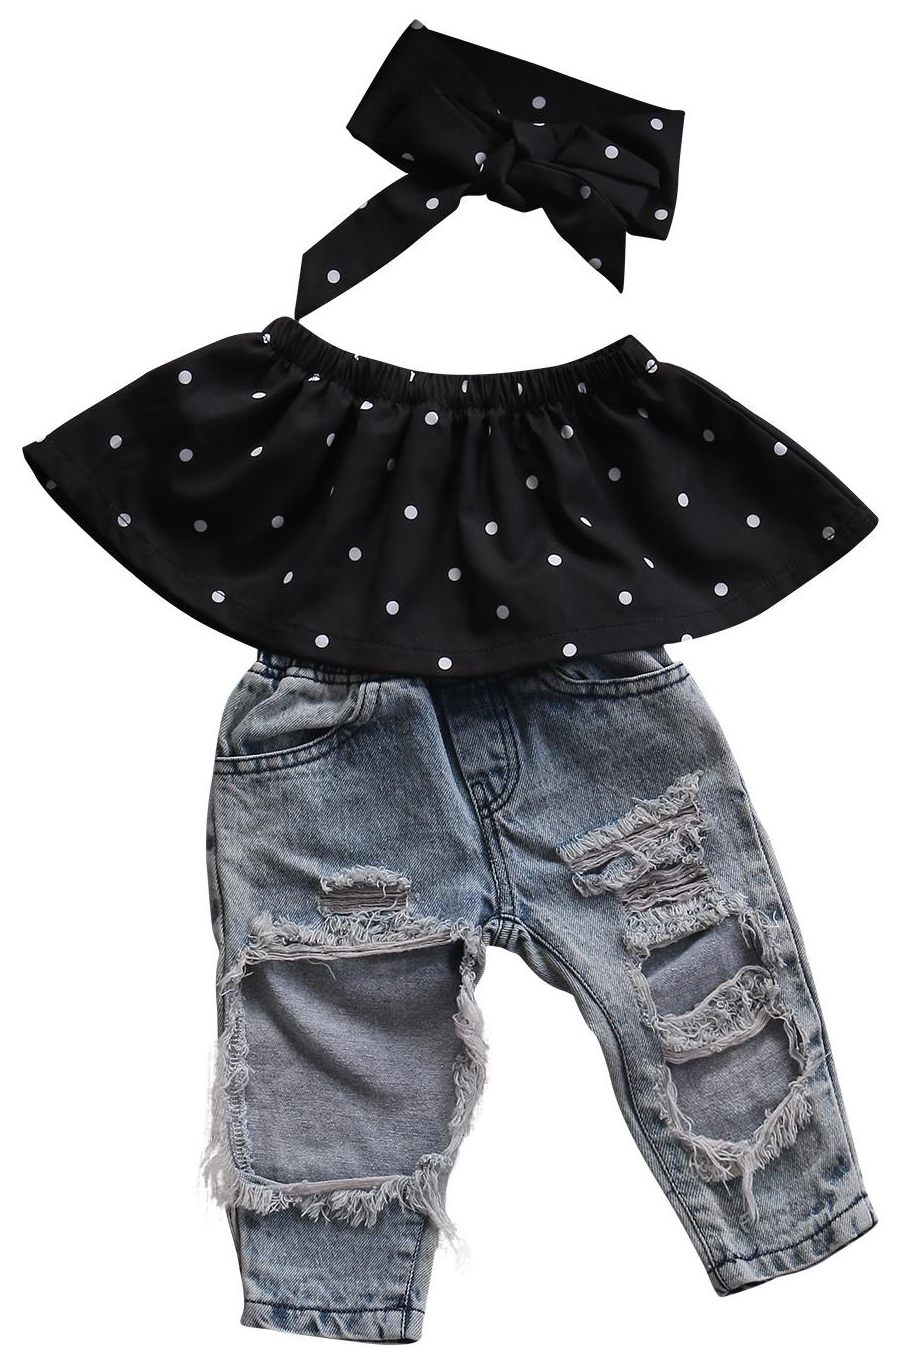 6753371e499a0 SALE 30% OFF + FREE SHIPPING! SHOP Our Polka Dot Jean Set for Baby Girls